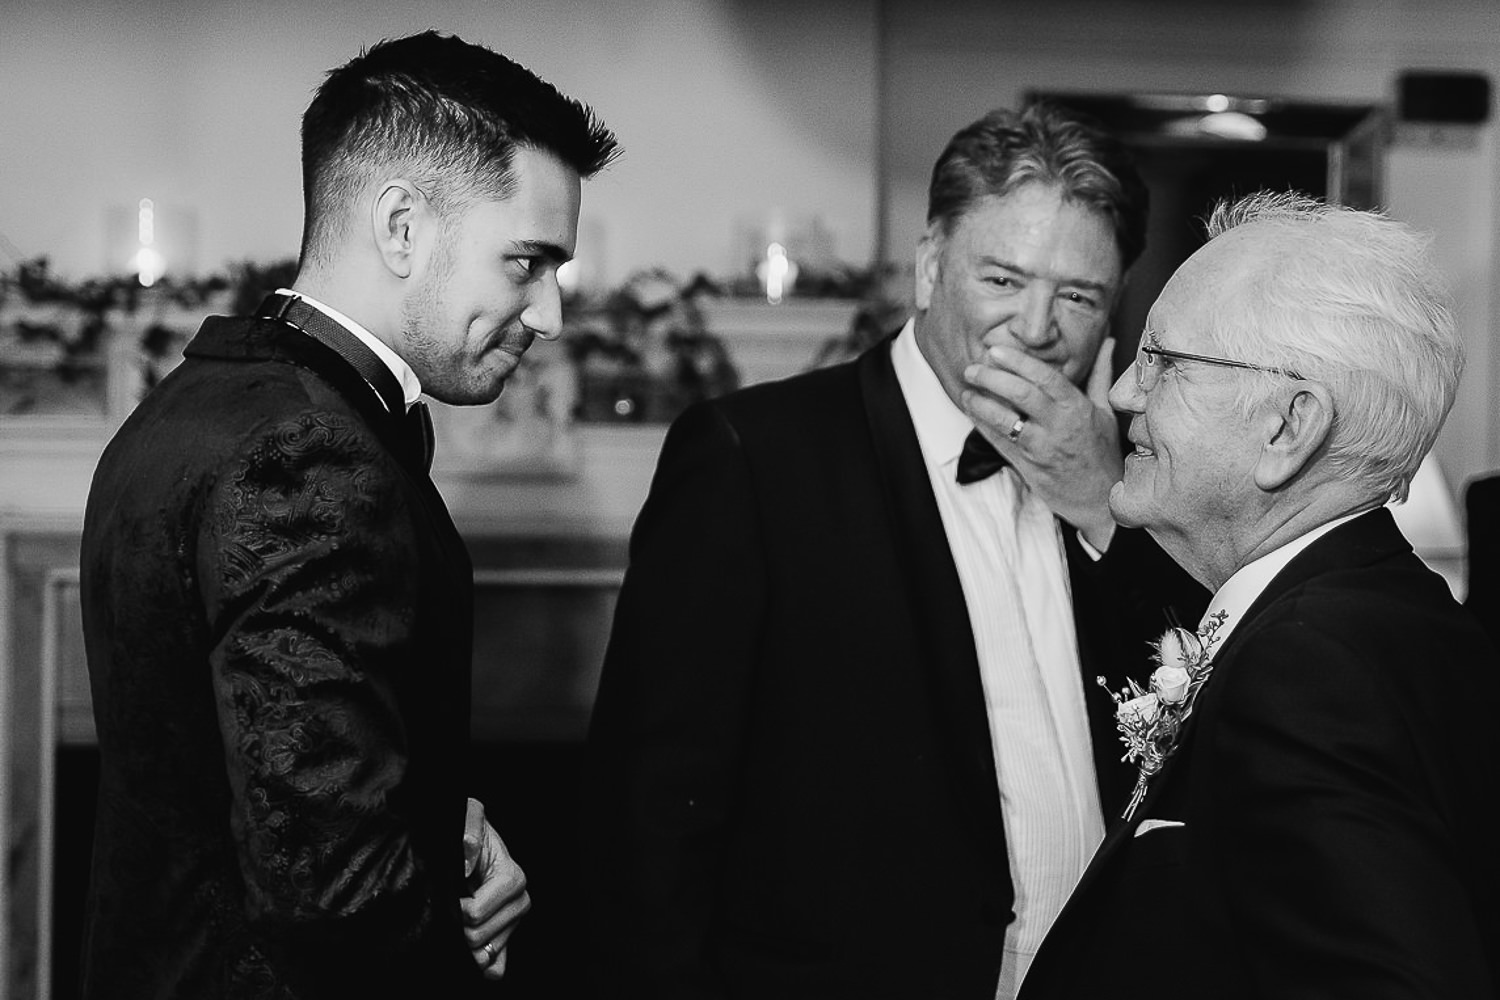 Groom embracing the father of the bride